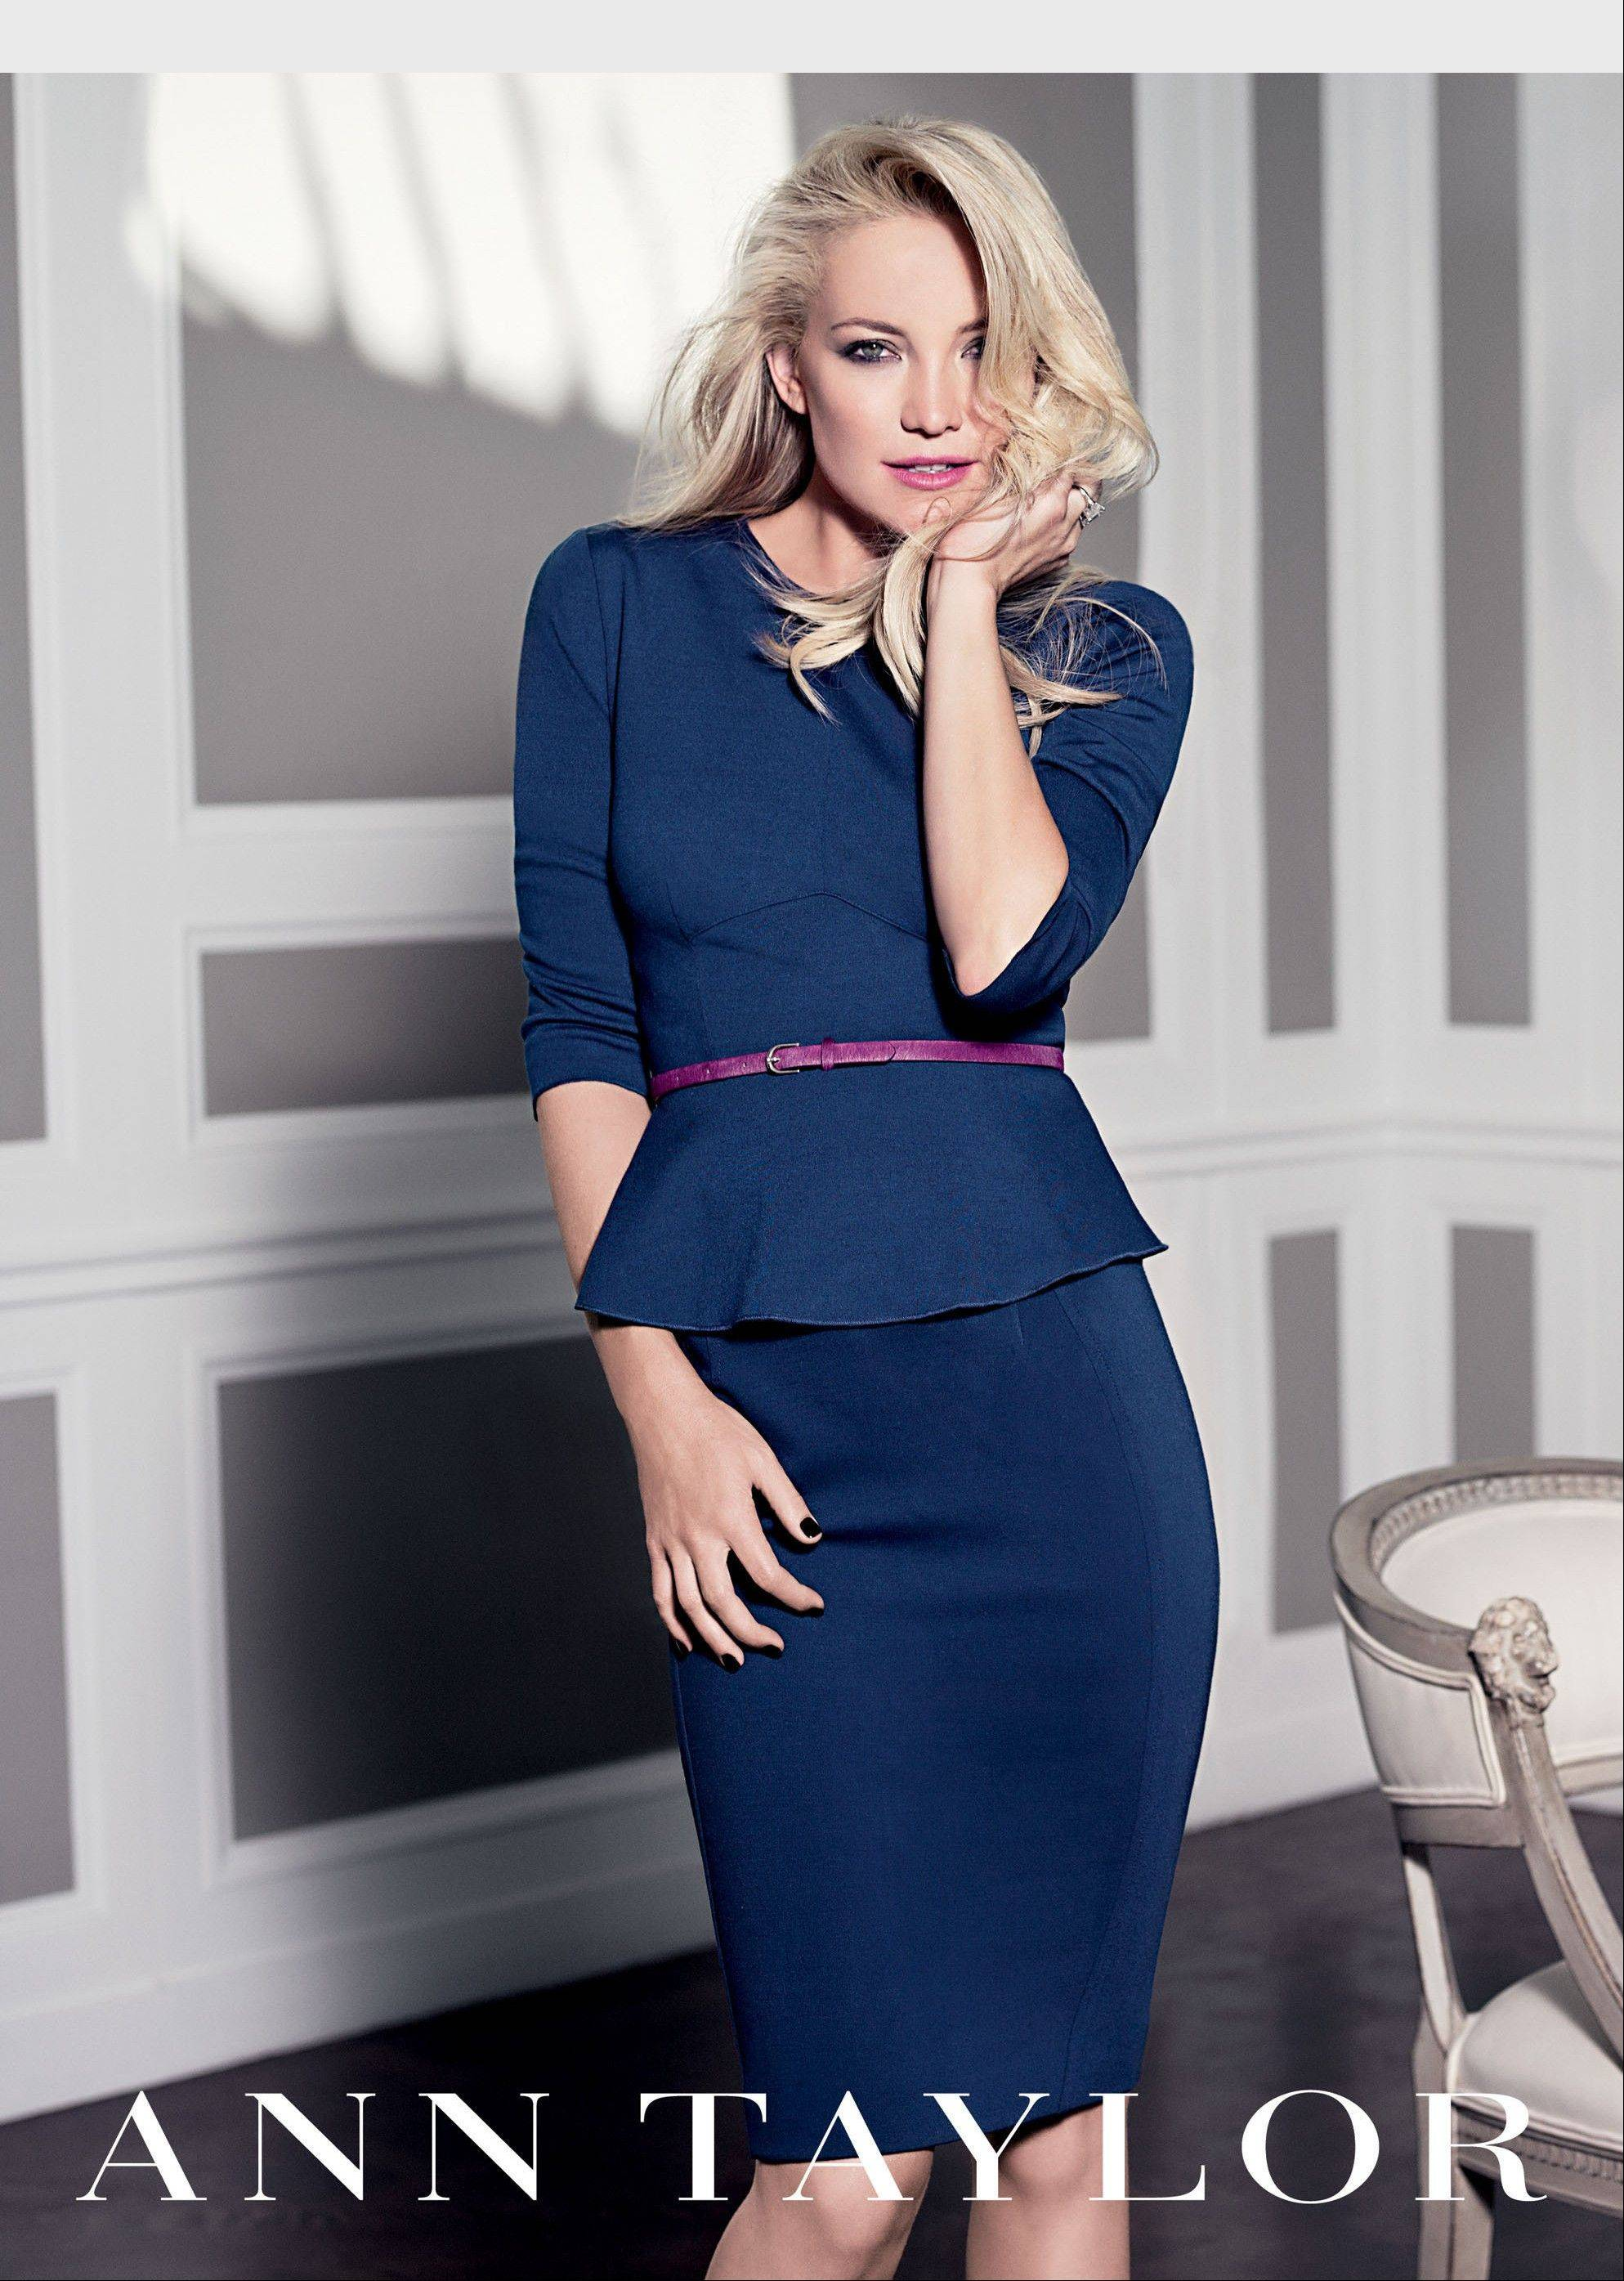 Kate Hudson to return as face of Ann Taylor's Fall 2012 ad campaign.